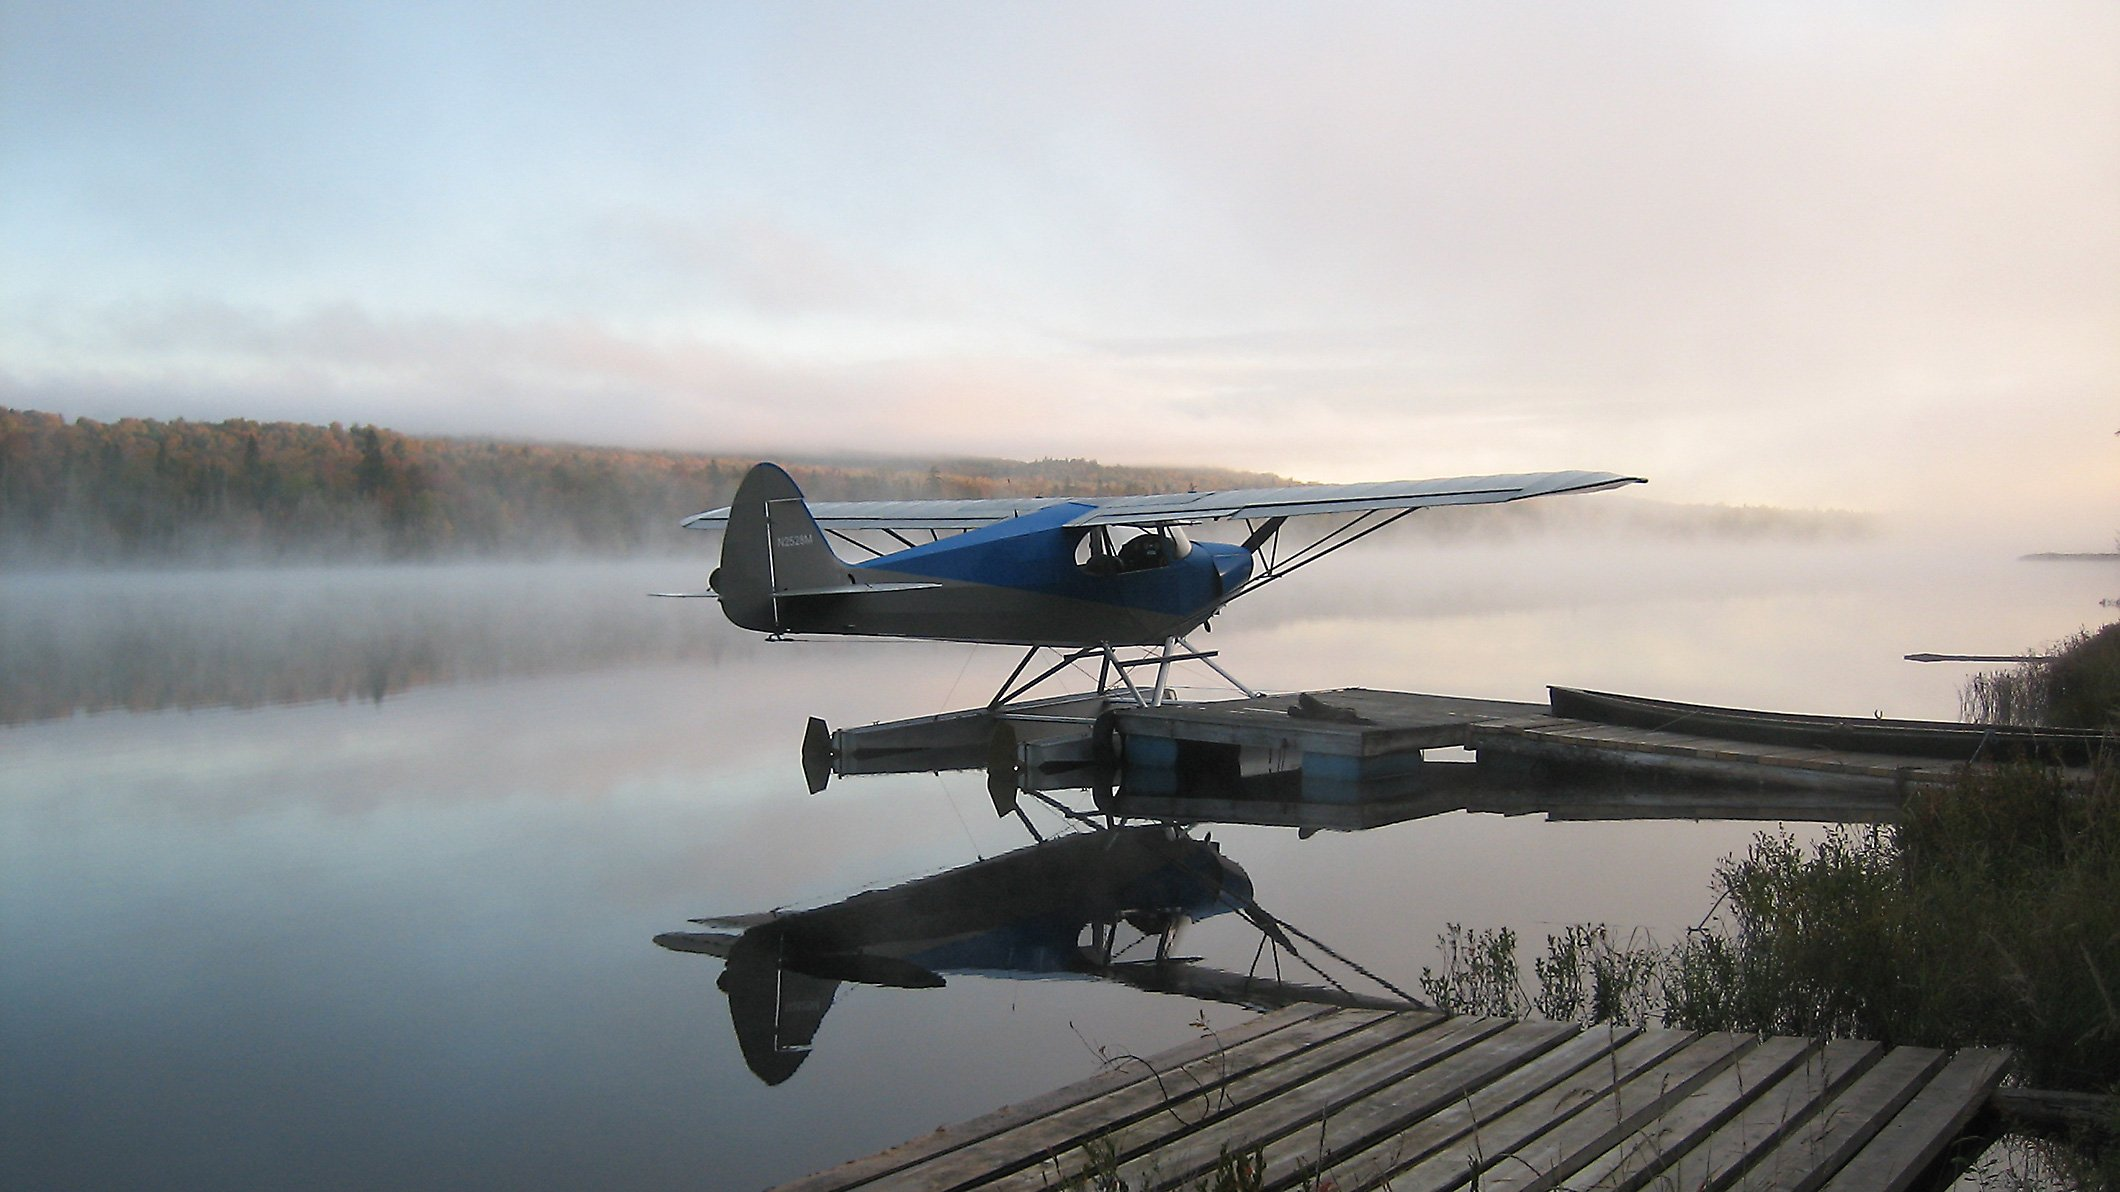 Our seaplane in front of Johnson's Allagash Lodge on Narrow Pond.